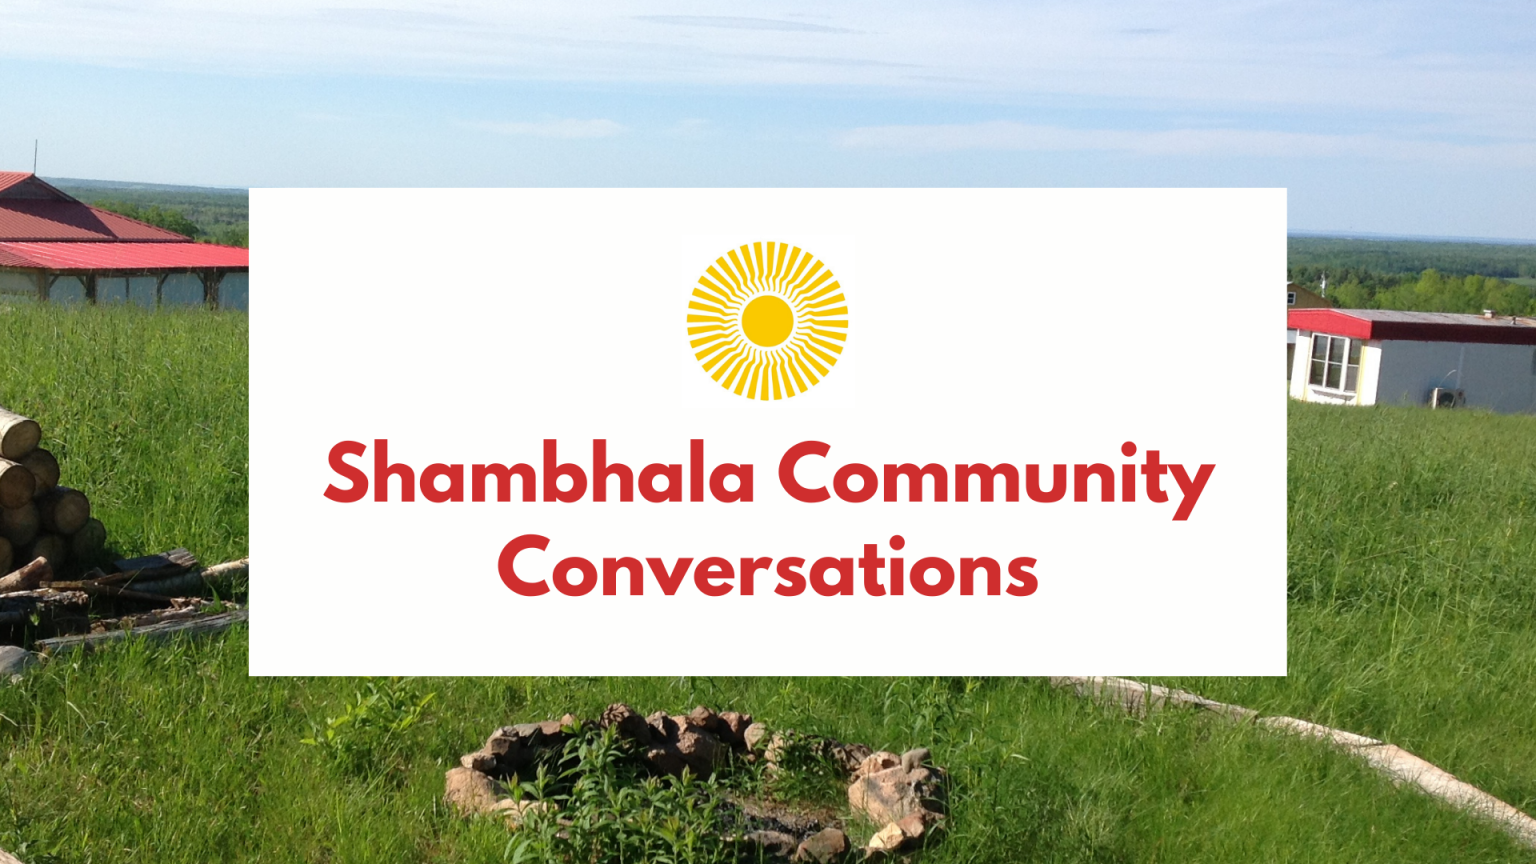 Shambhala Community Conversations